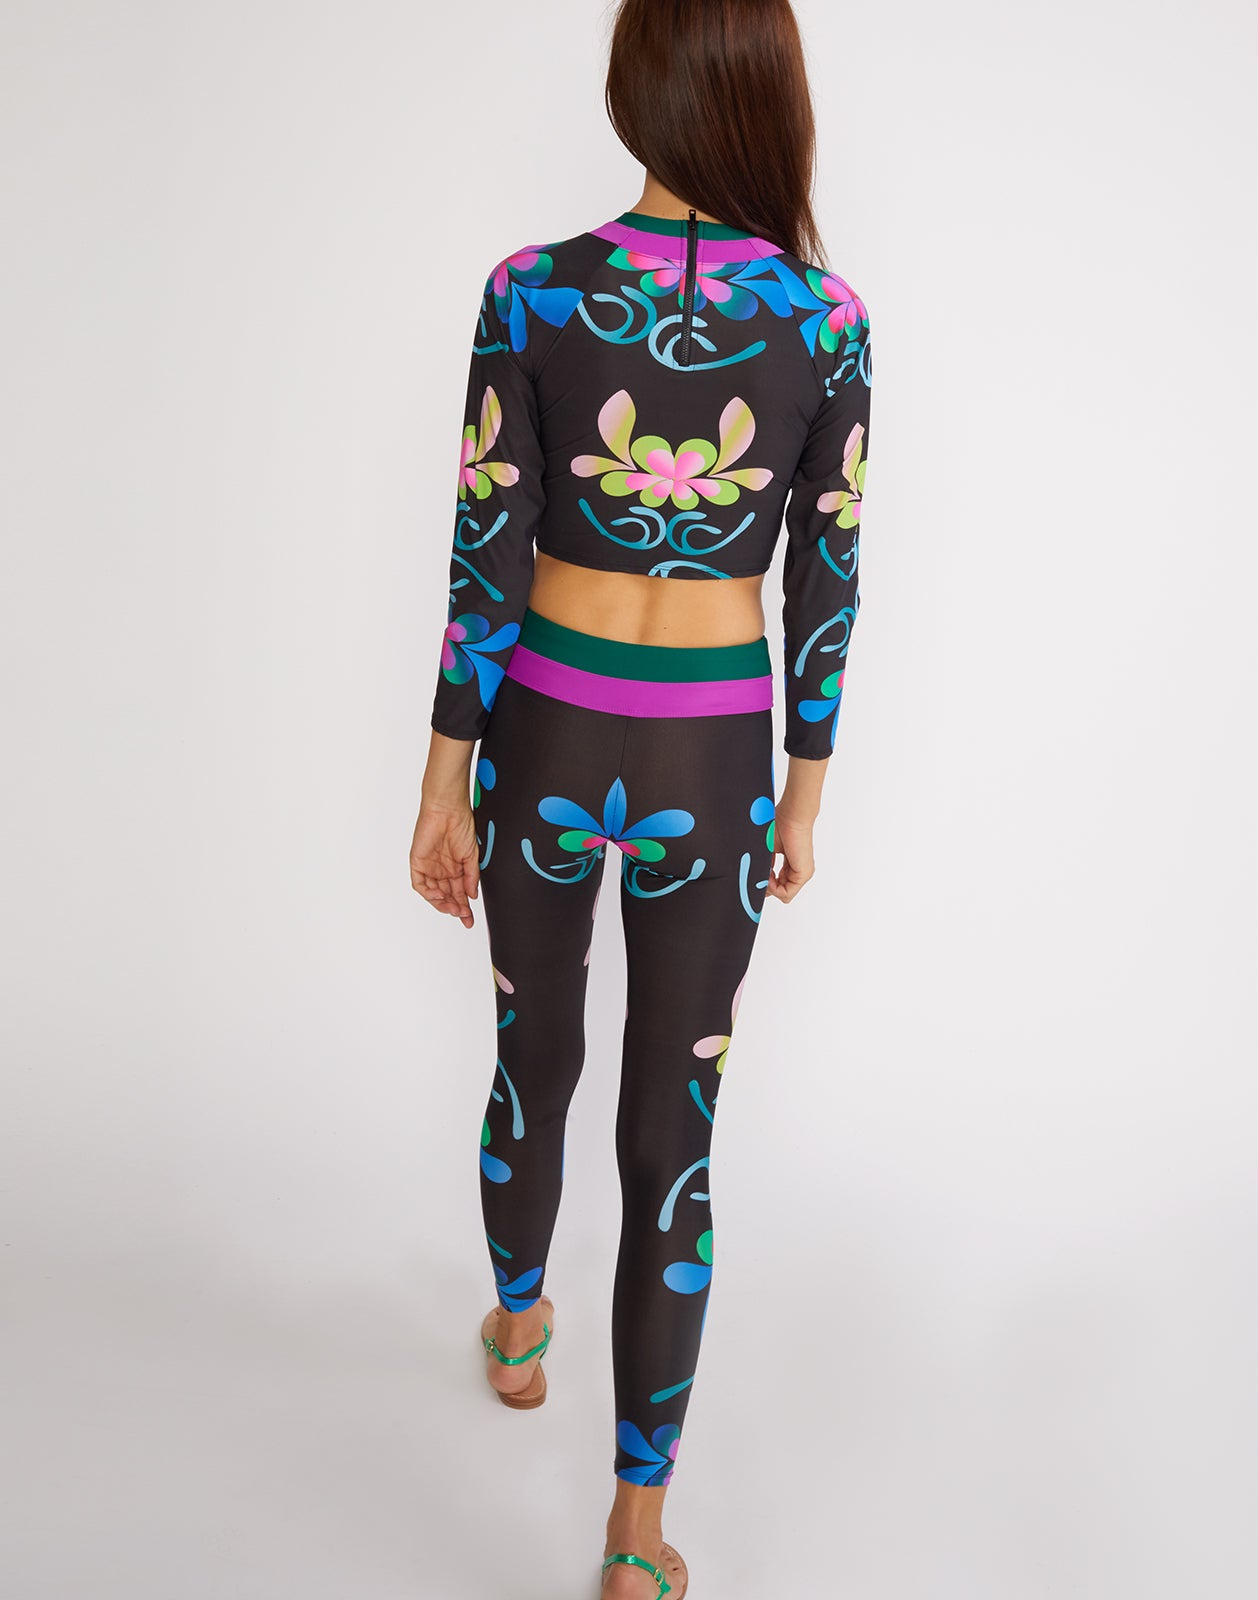 Full back view of the electric floral print surf and fitness legging.